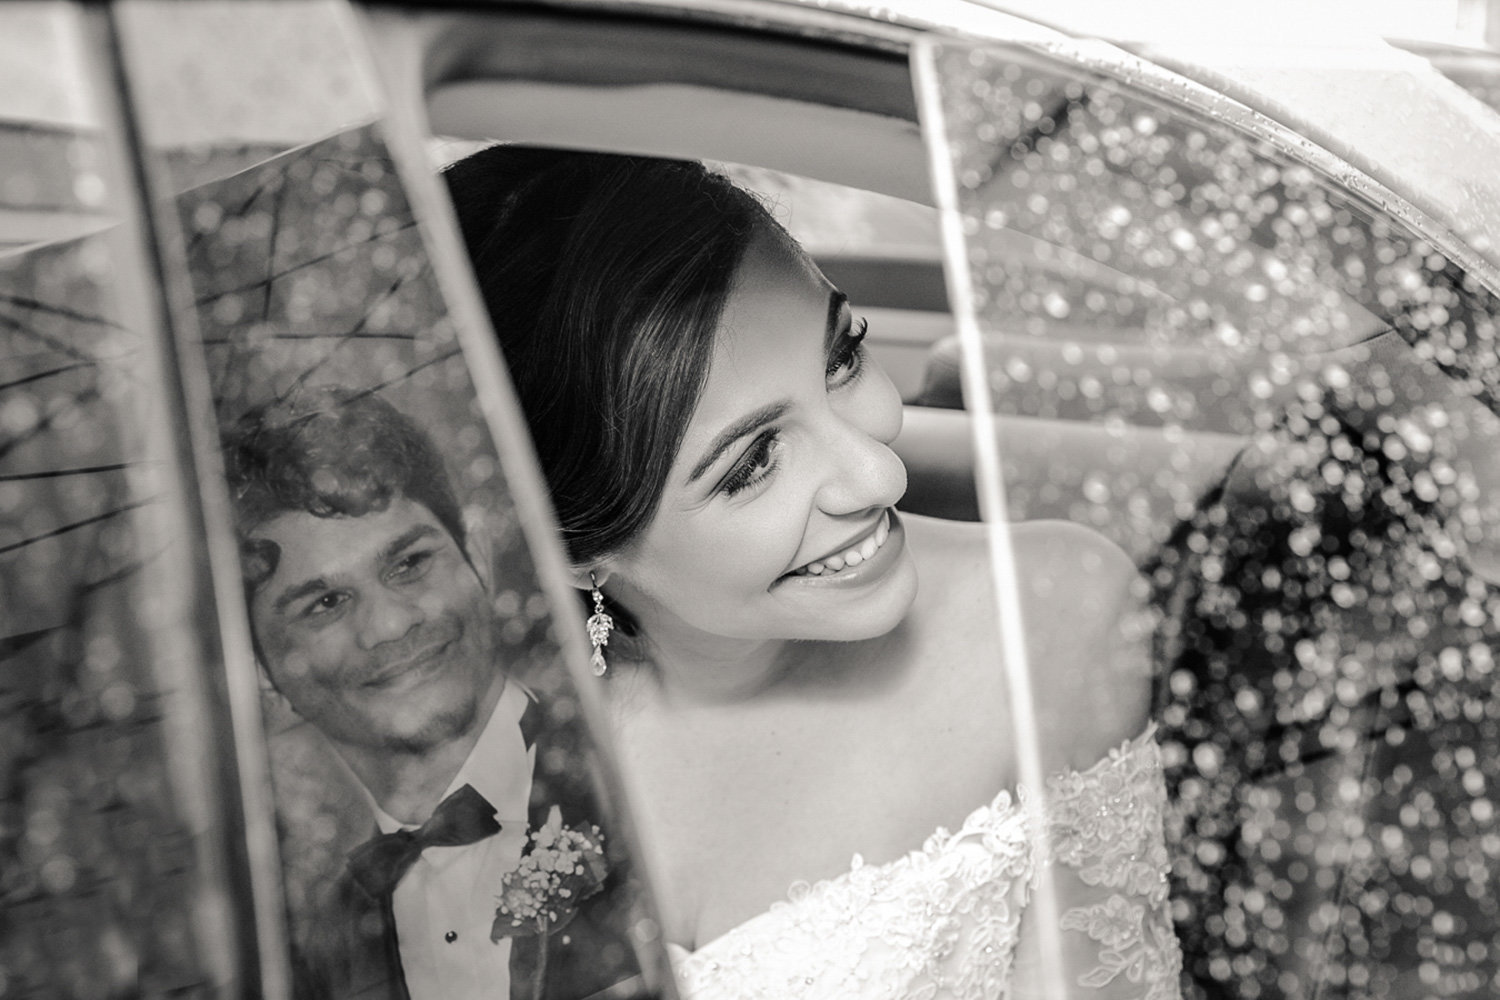 Bride in car with groom's reflection in B+W. Photo by Ross Photography, Trinidad, W.I..